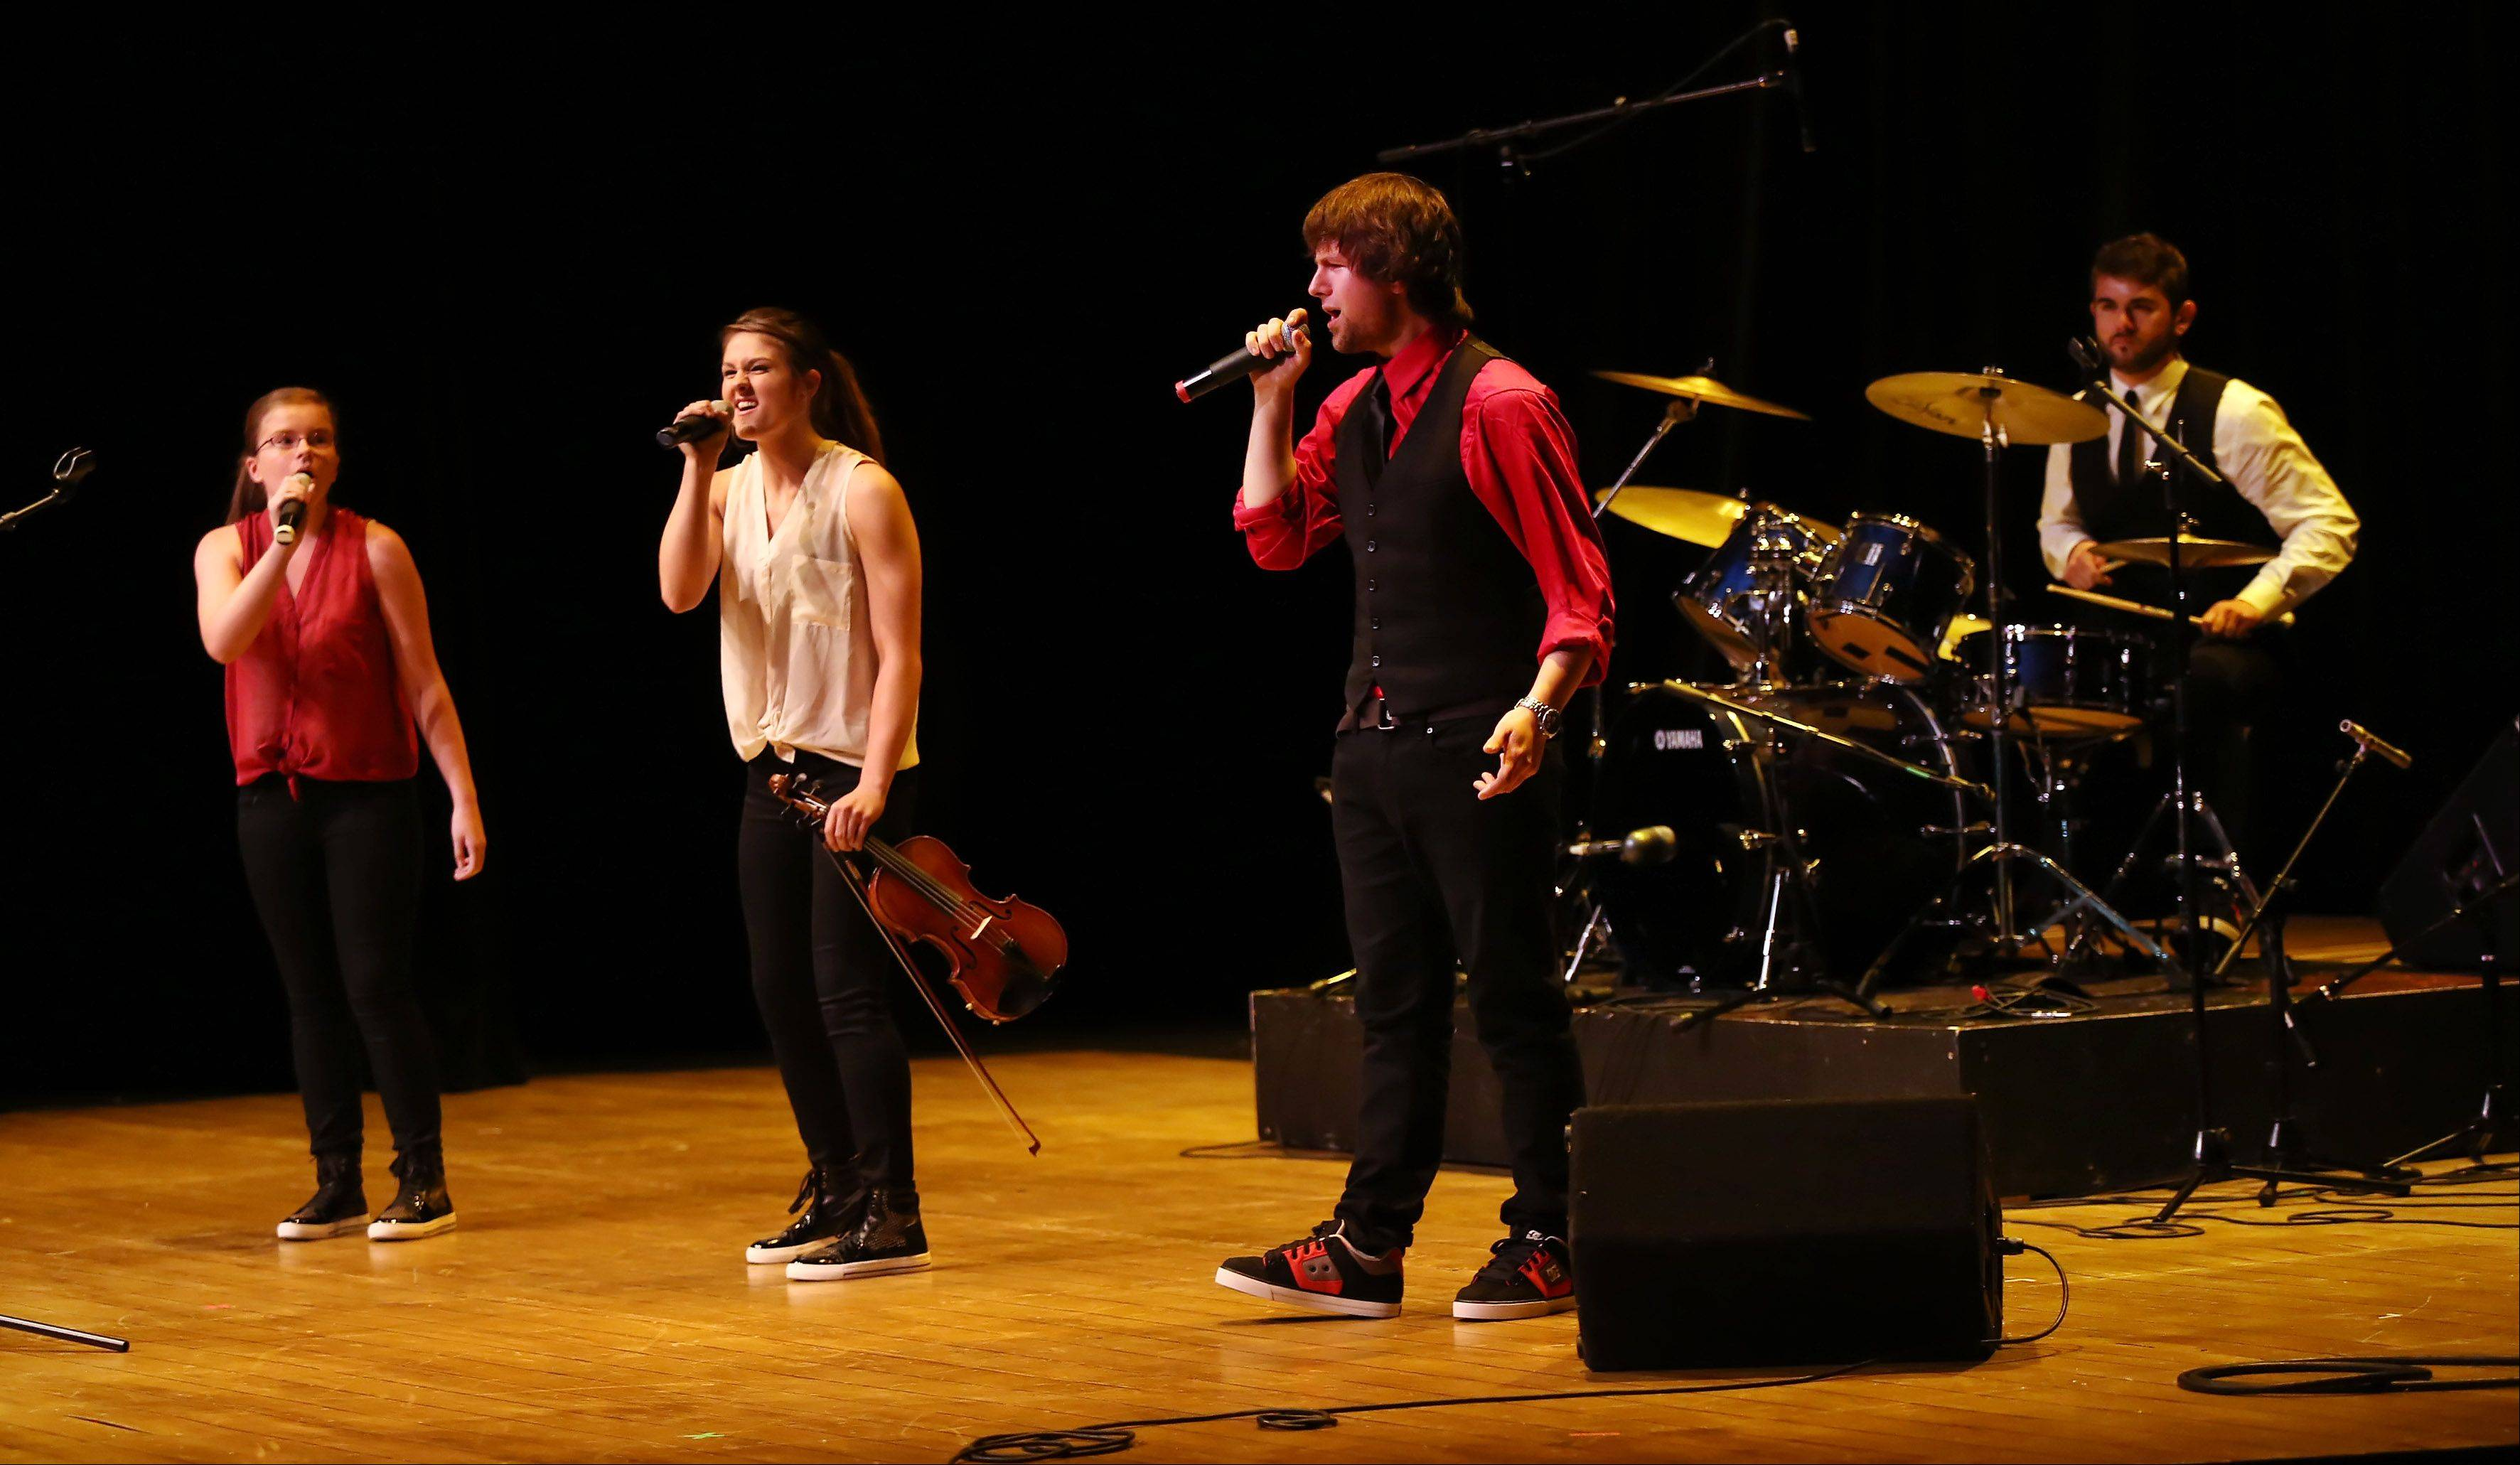 The family band No Immunity of Arlington Heights performs Sunday during the second round of performances by finalists of the Suburban Chicago's Got Talent competition at the Metropolis Performing Arts Centre in Arlington Heights. The summer long talent contest is presented by the Daily Herald and sponsored by the Arlington Heights Chamber of Commerce.